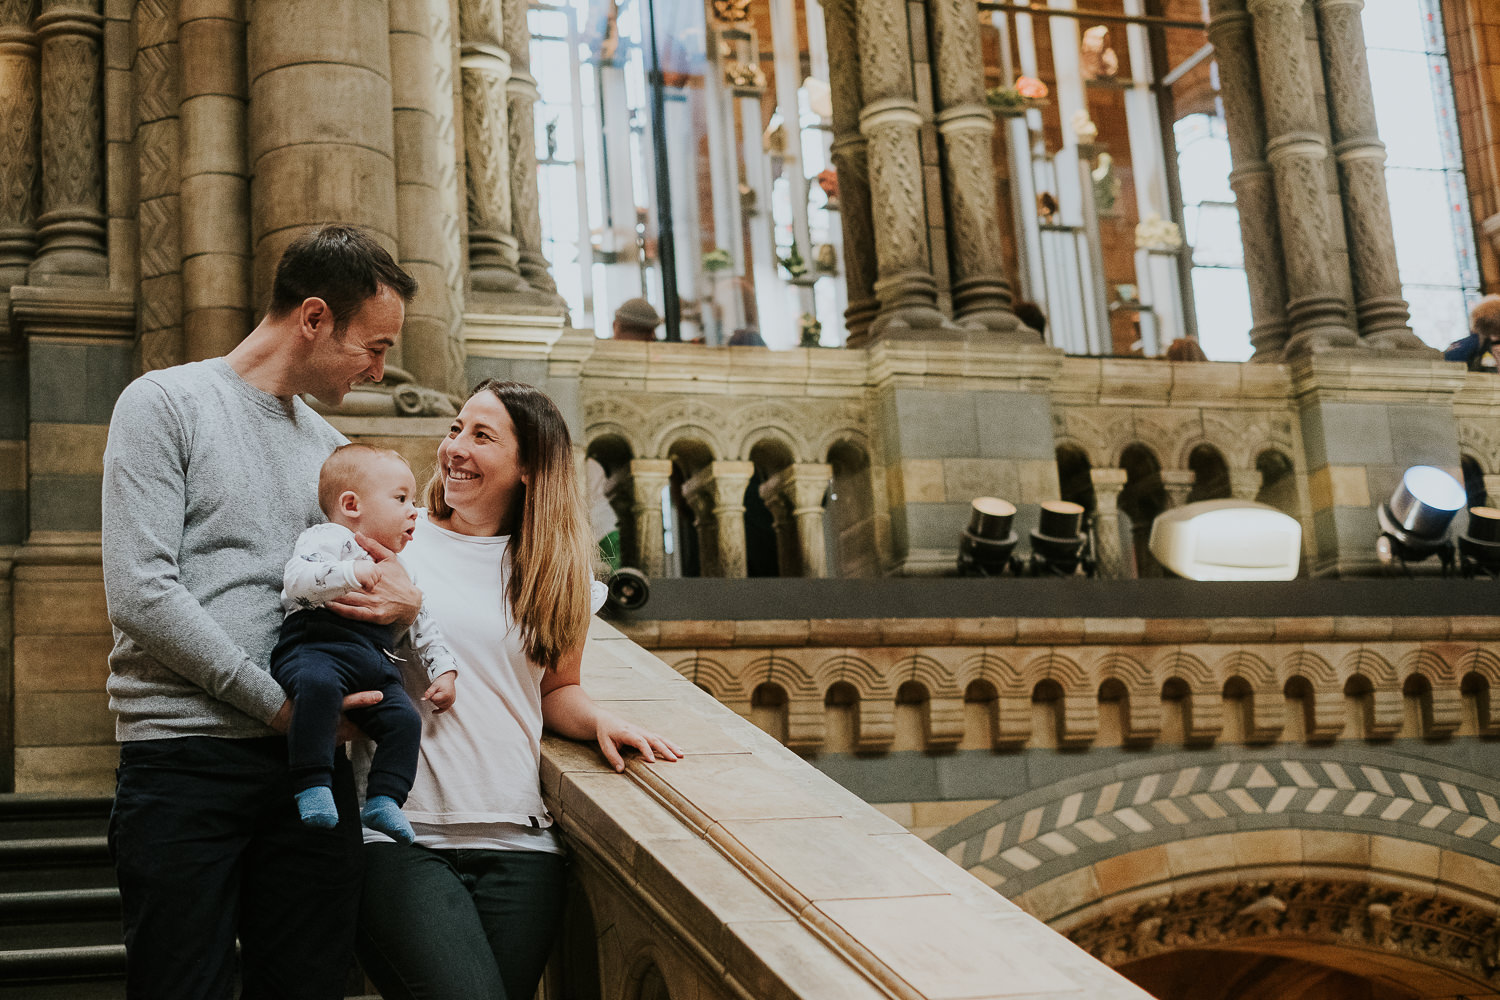 family portrait photograph couple with baby son at the natural history museum family photography hintze hall